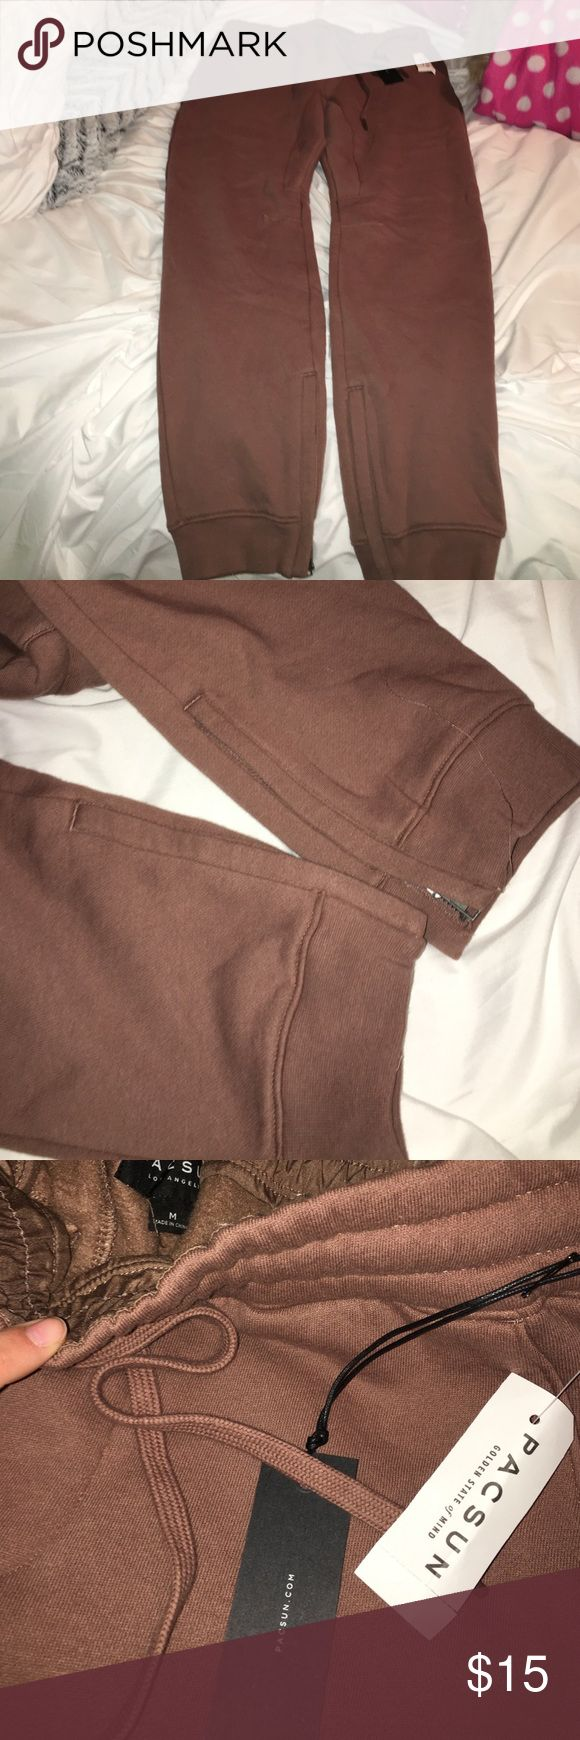 pacsun joggers brown joggers with zippers PacSun Pants Sweatpants & Joggers